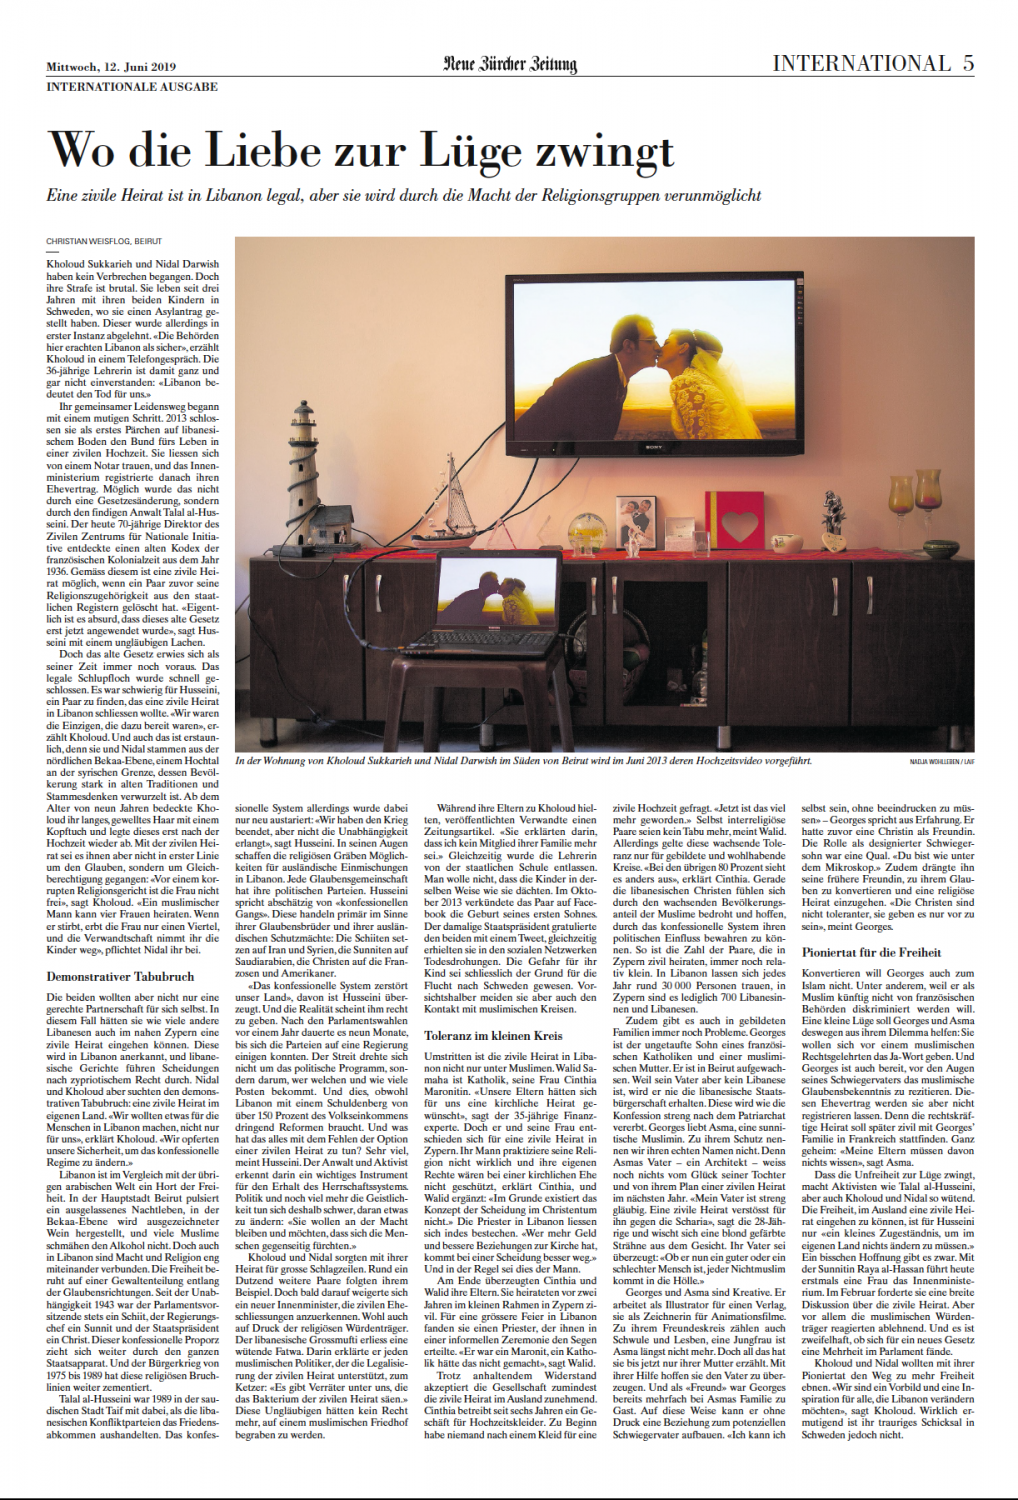 Art and Documentary Photography - Loading NZZ_Liebe_Luege.png